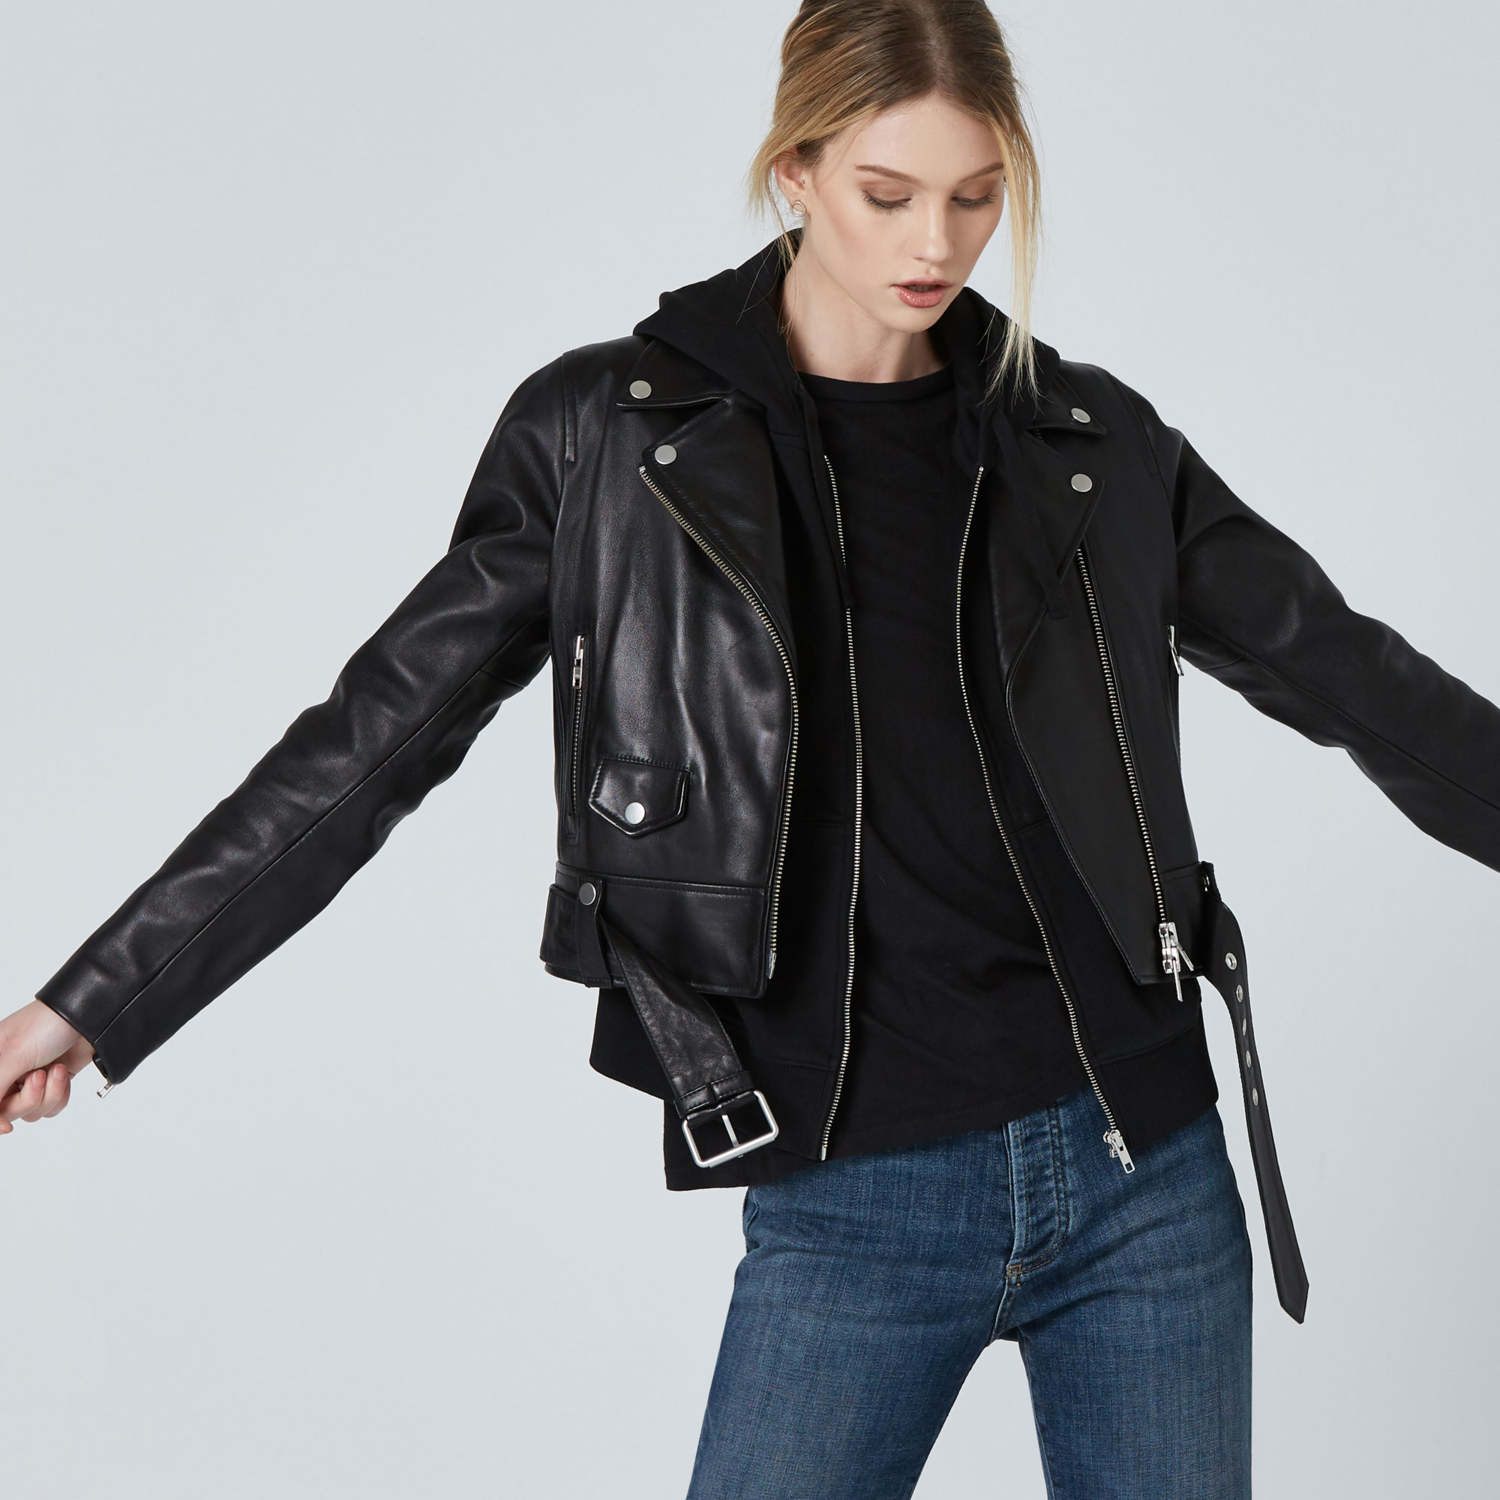 women s leather jacket | Nordstrom